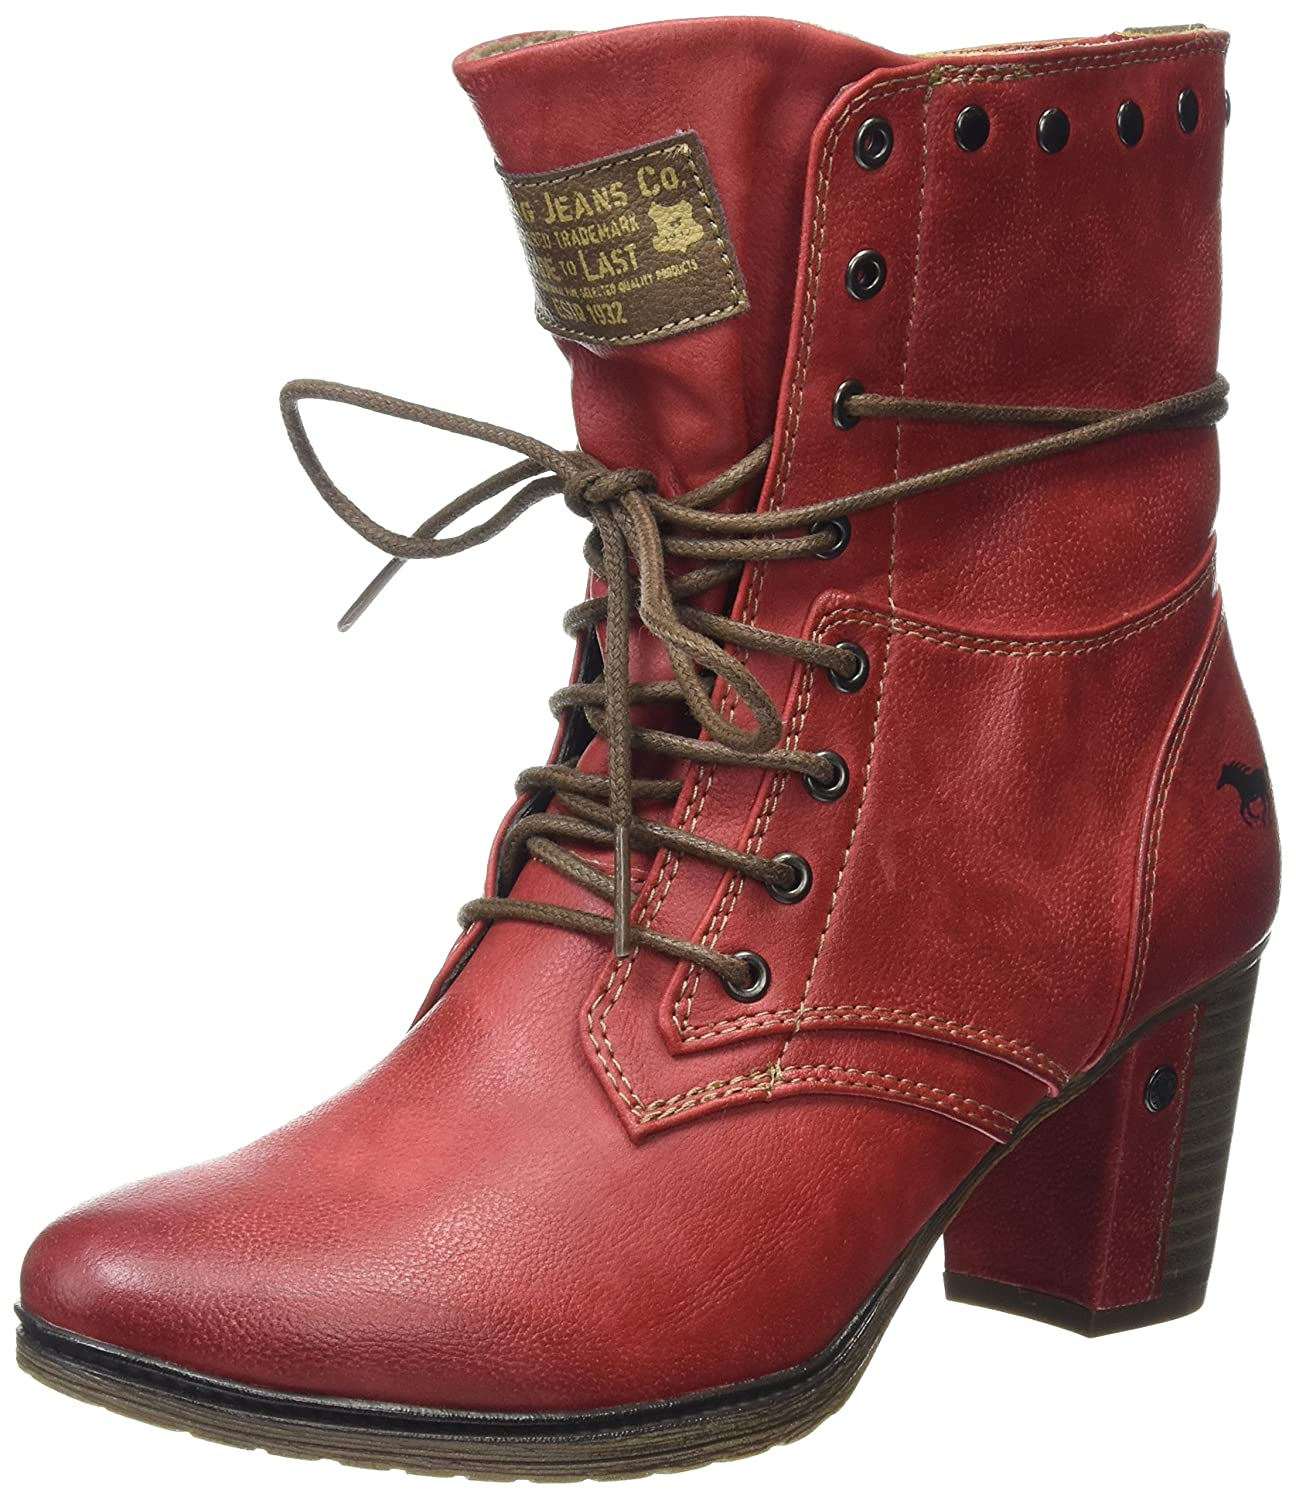 Mustang 1199-505, Femme Bottes Mustang Femme Rouge 1199-505, (Rot) 2c1ec67 - deadsea.space